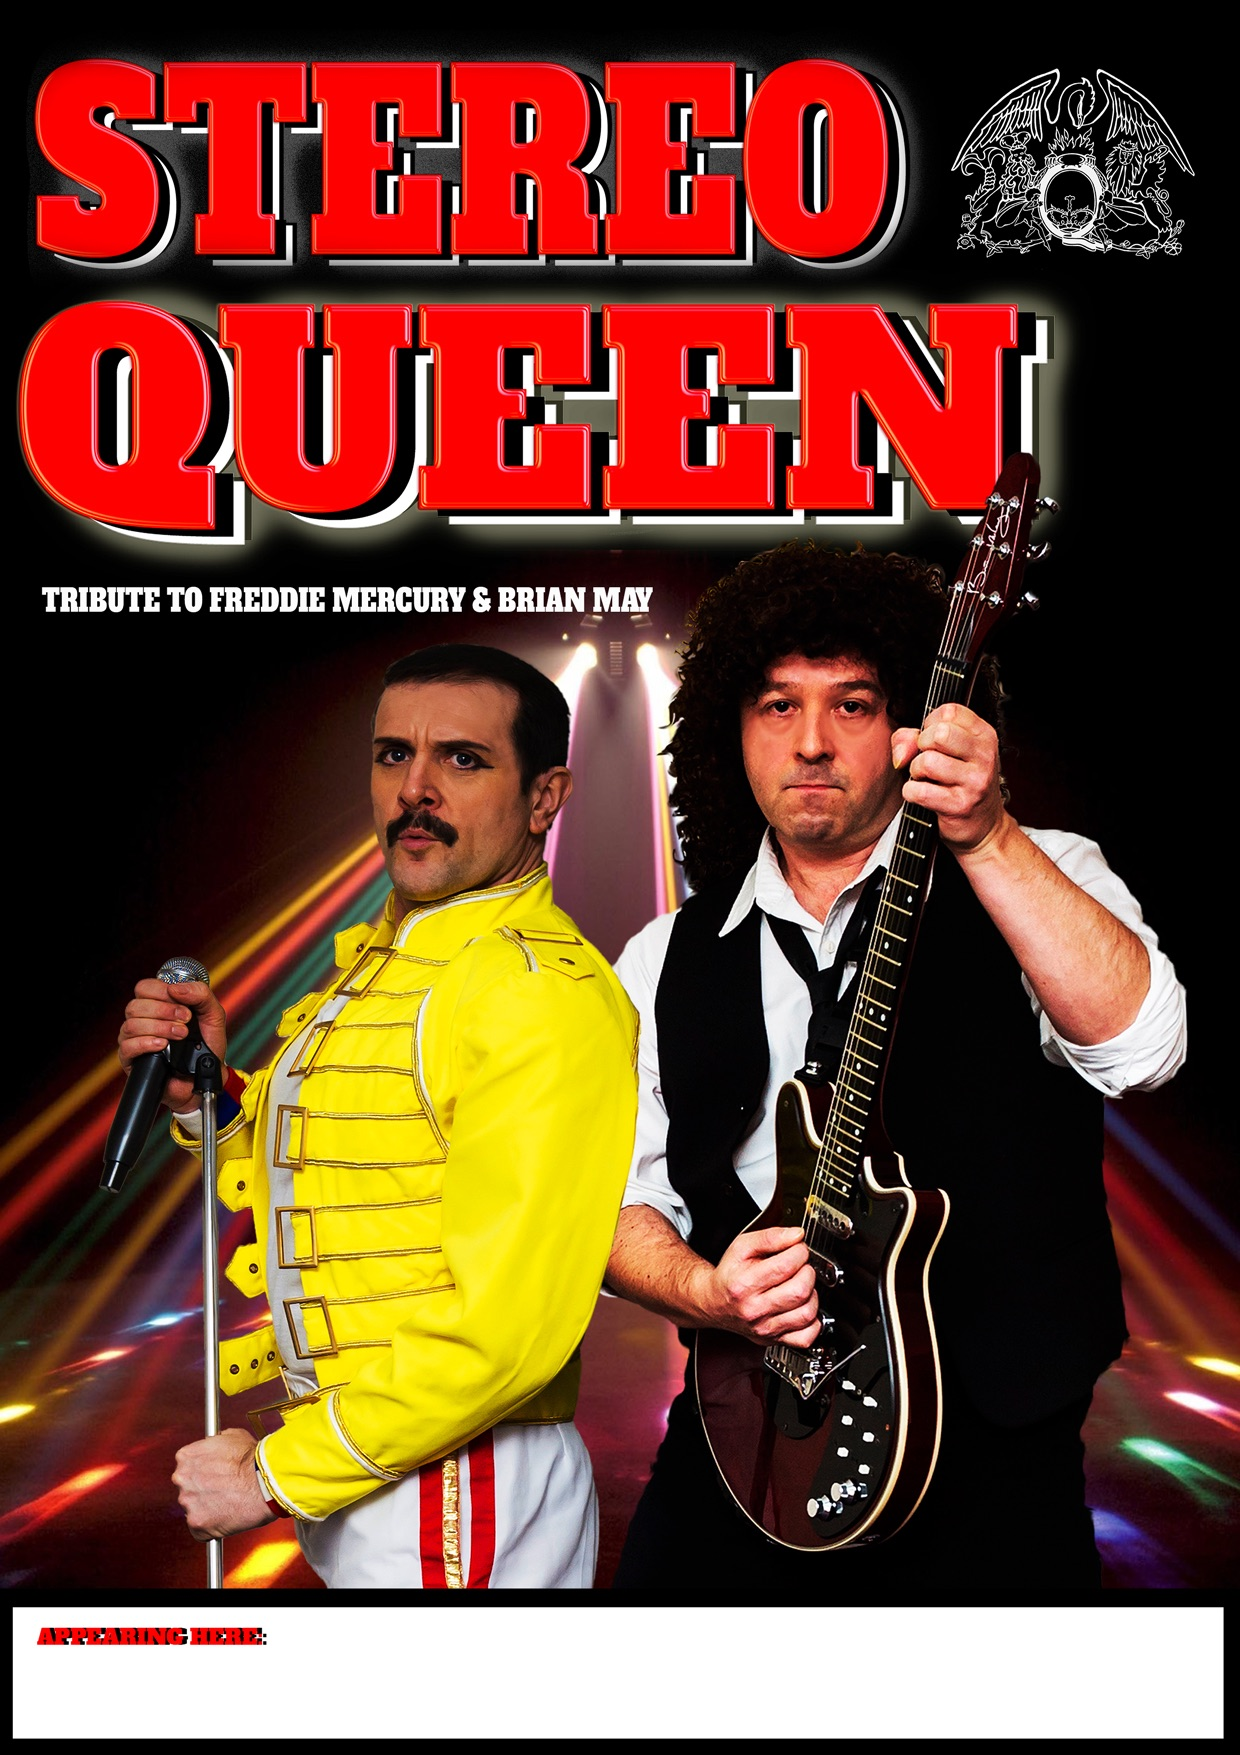 Stereo Queen Freddie Mercury and Brian May Tribute Show